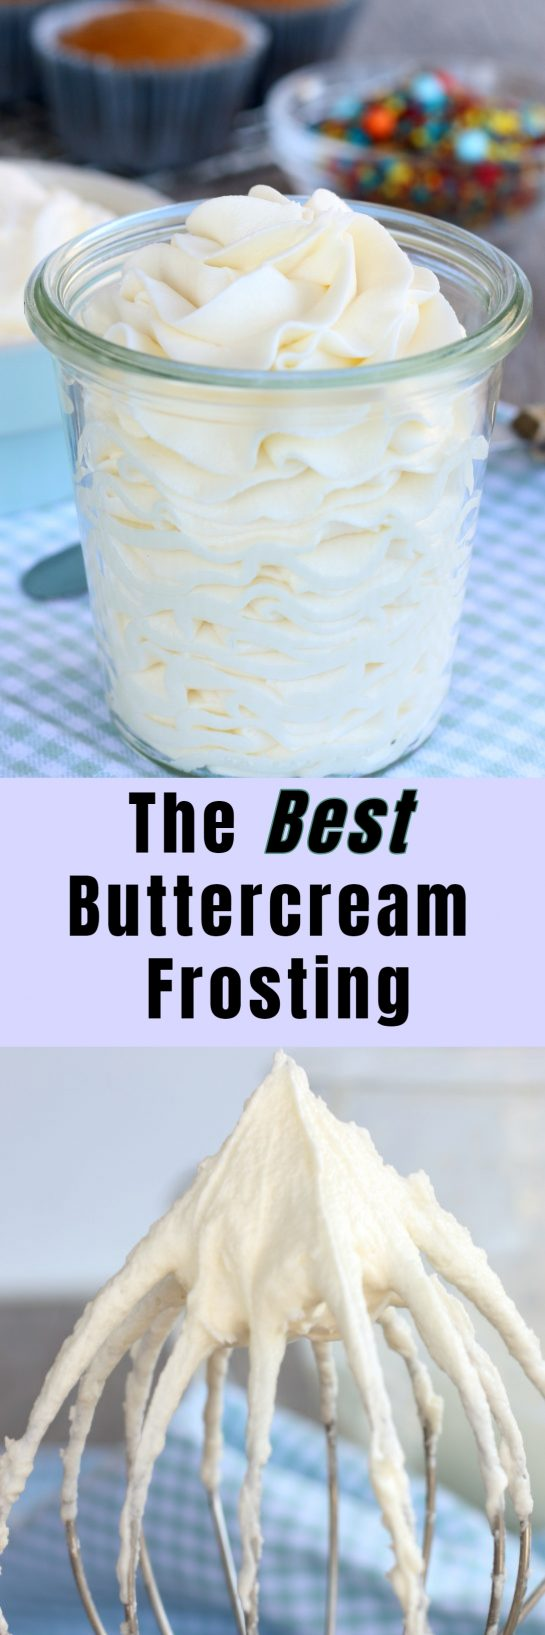 A great buttercream frosting recipe is a must. This is the best buttercream frosting! Let me show you how to make buttercream frosting.